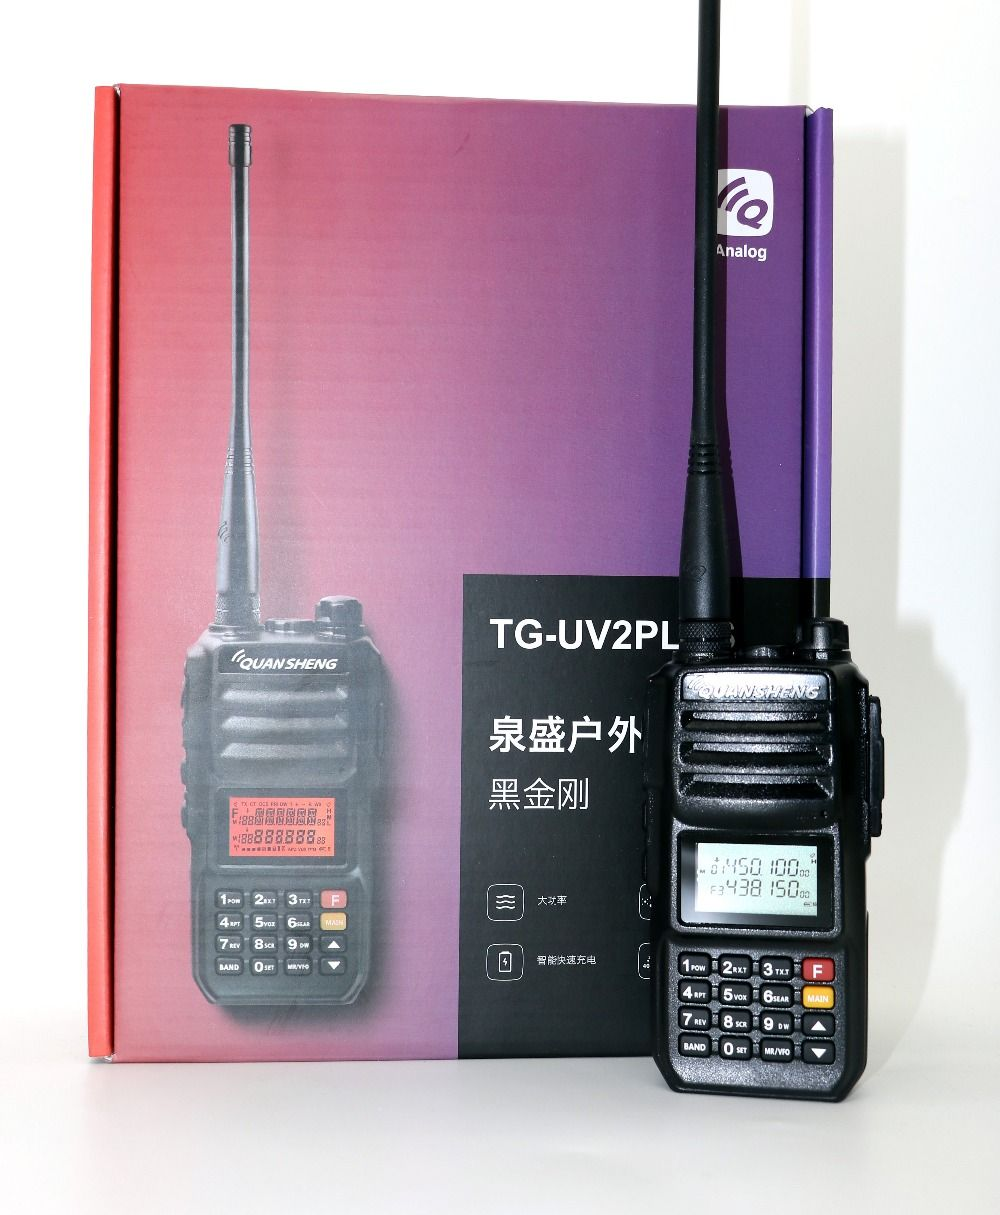 Quansheng TG-UV2 plus Walkie Talkie VHF UHF Dual band 10W 200CH Portable cb radio UV2 plus Transceiver with 4000mAh battery